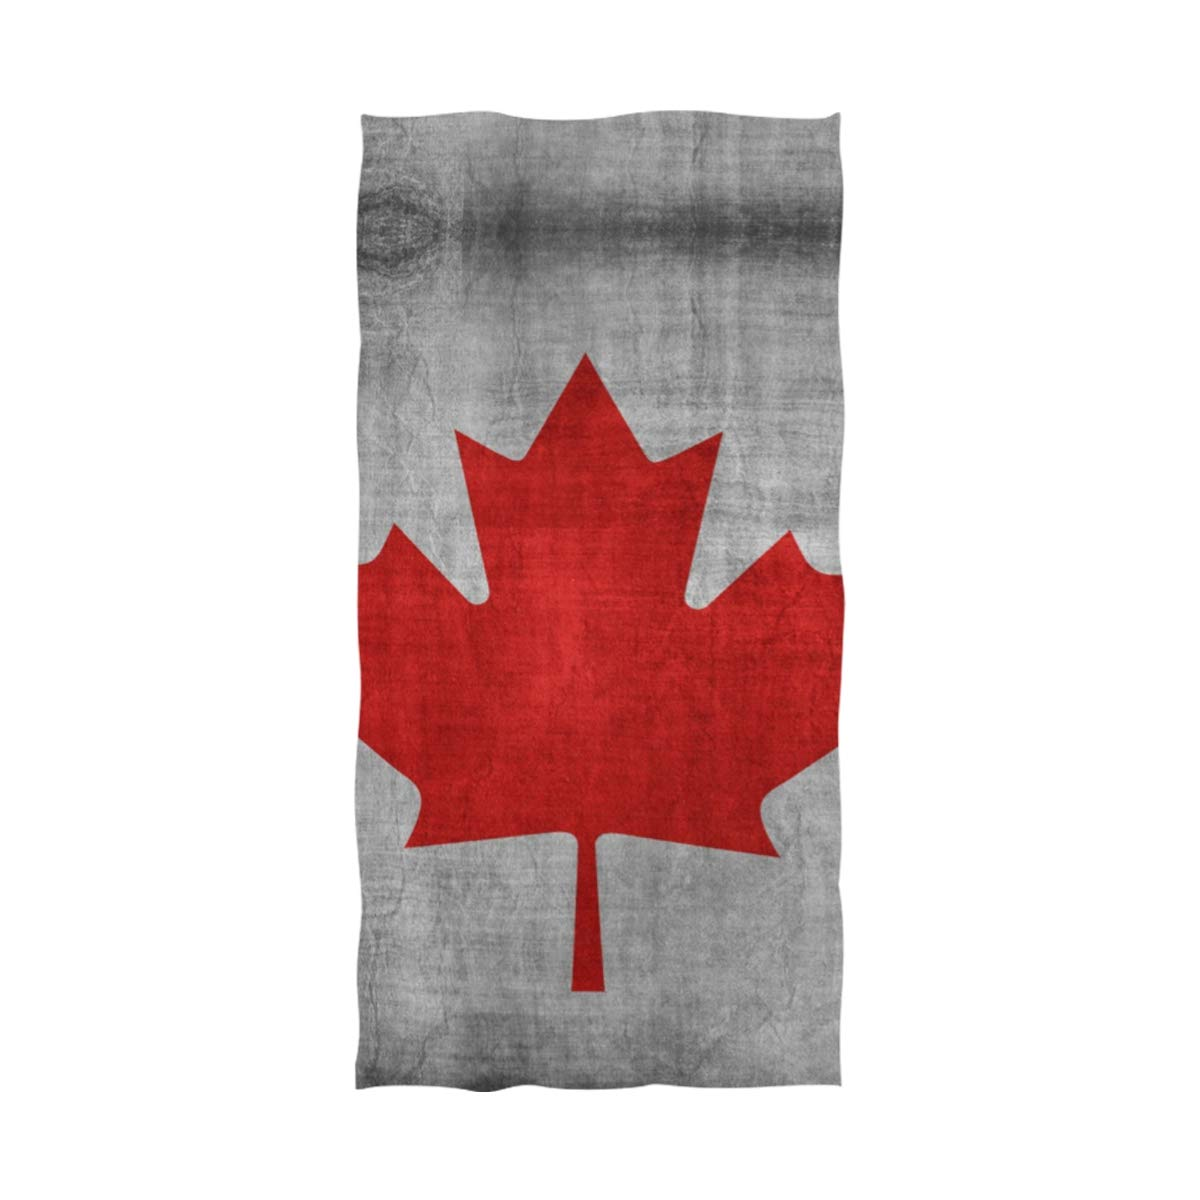 QIAOSHENG Canadian Flag Bath Towels Spa BathTowel Pool Gym Towel Beach Towel Oversized 64x32 for Girls Kids Boys Men Womens